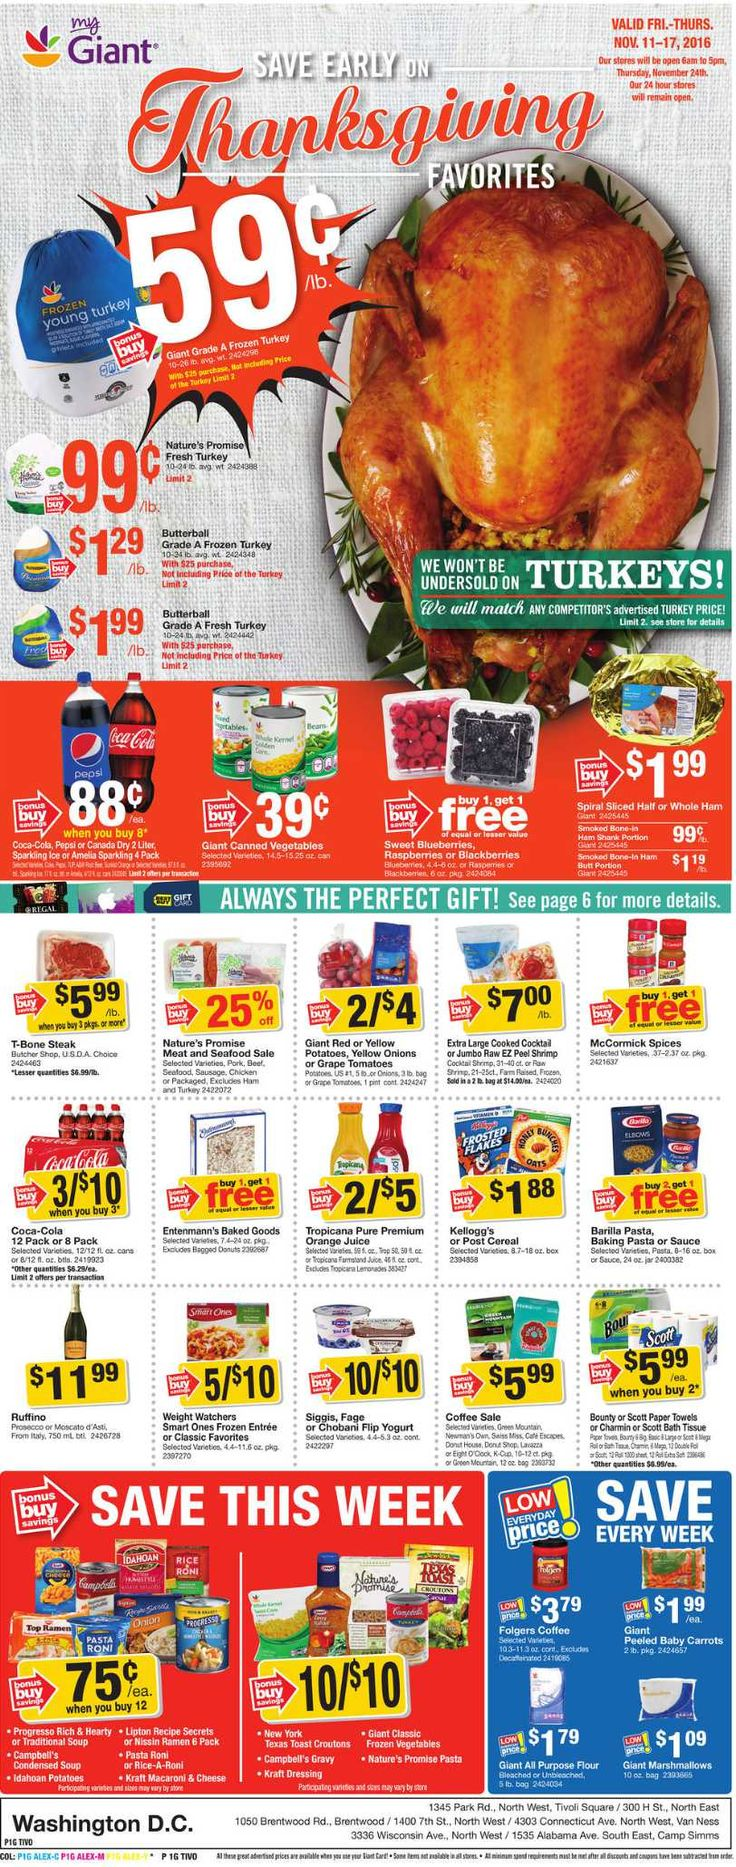 Giant Food Weekly Ad November 11 - 17, 2016 - http://www.olcatalog.com/grocery/giant-food-weekly-ad.html